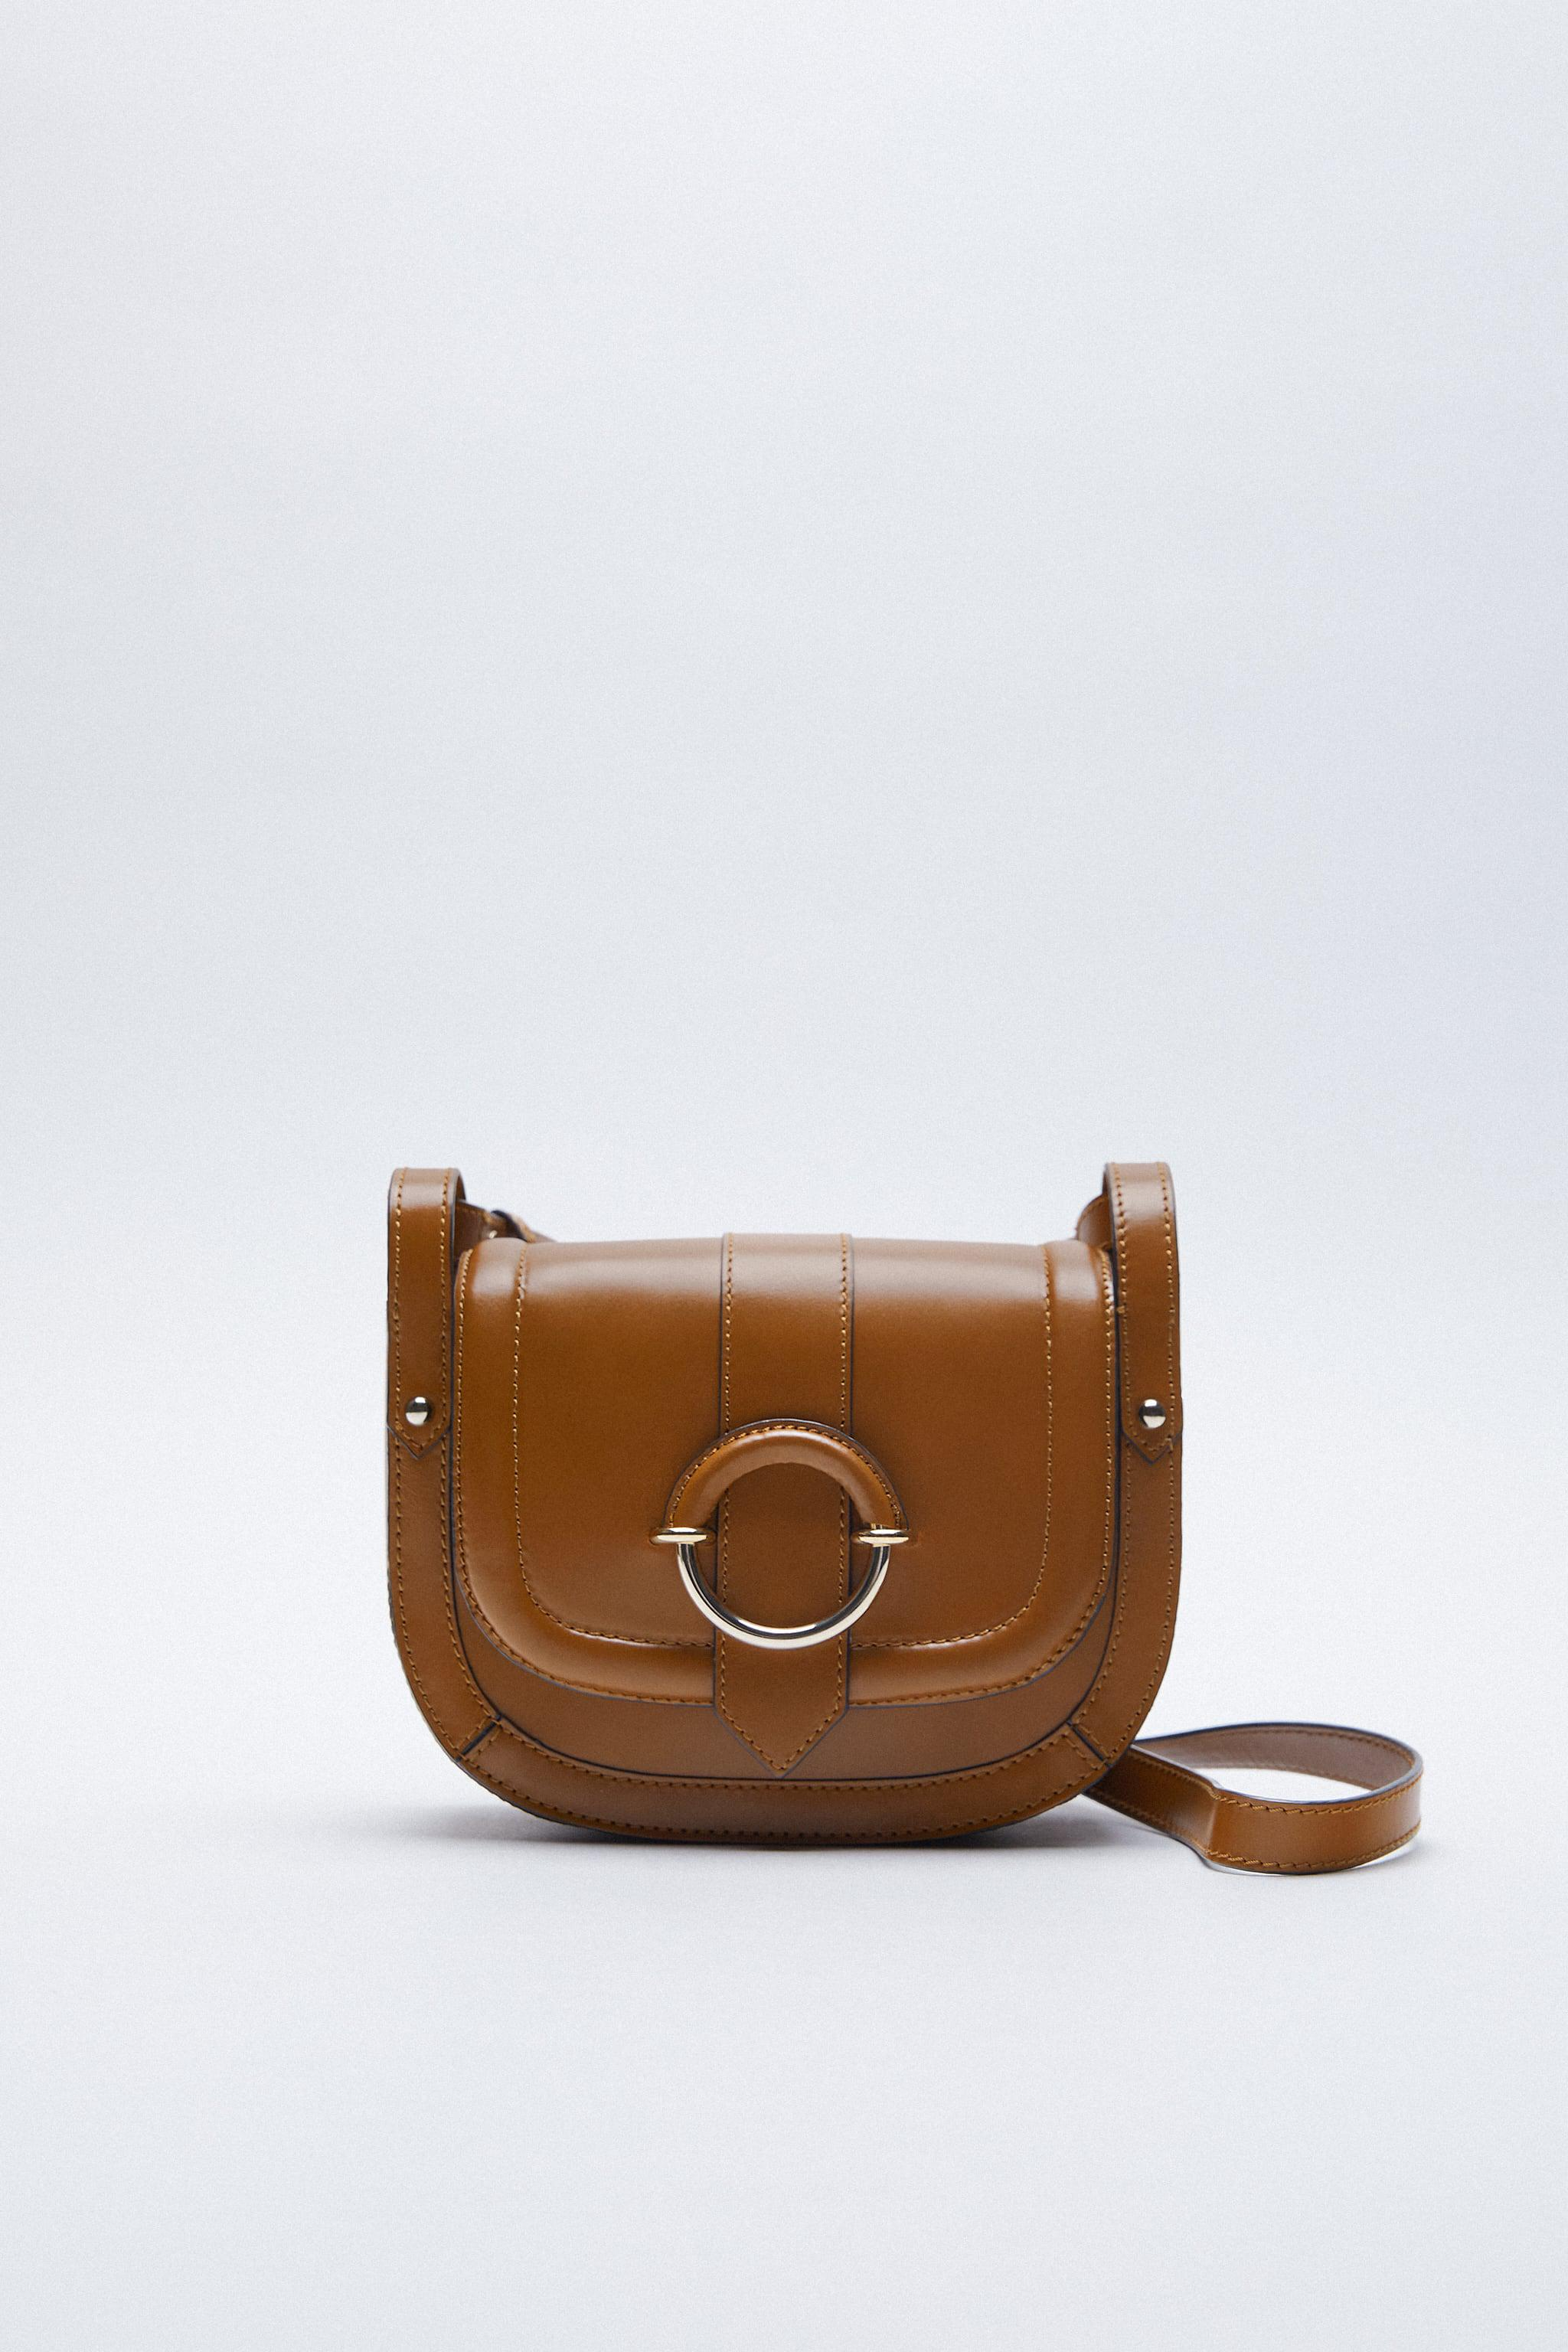 OVAL LEATHER CROSSBODY BAG WITH BUCKLE 1